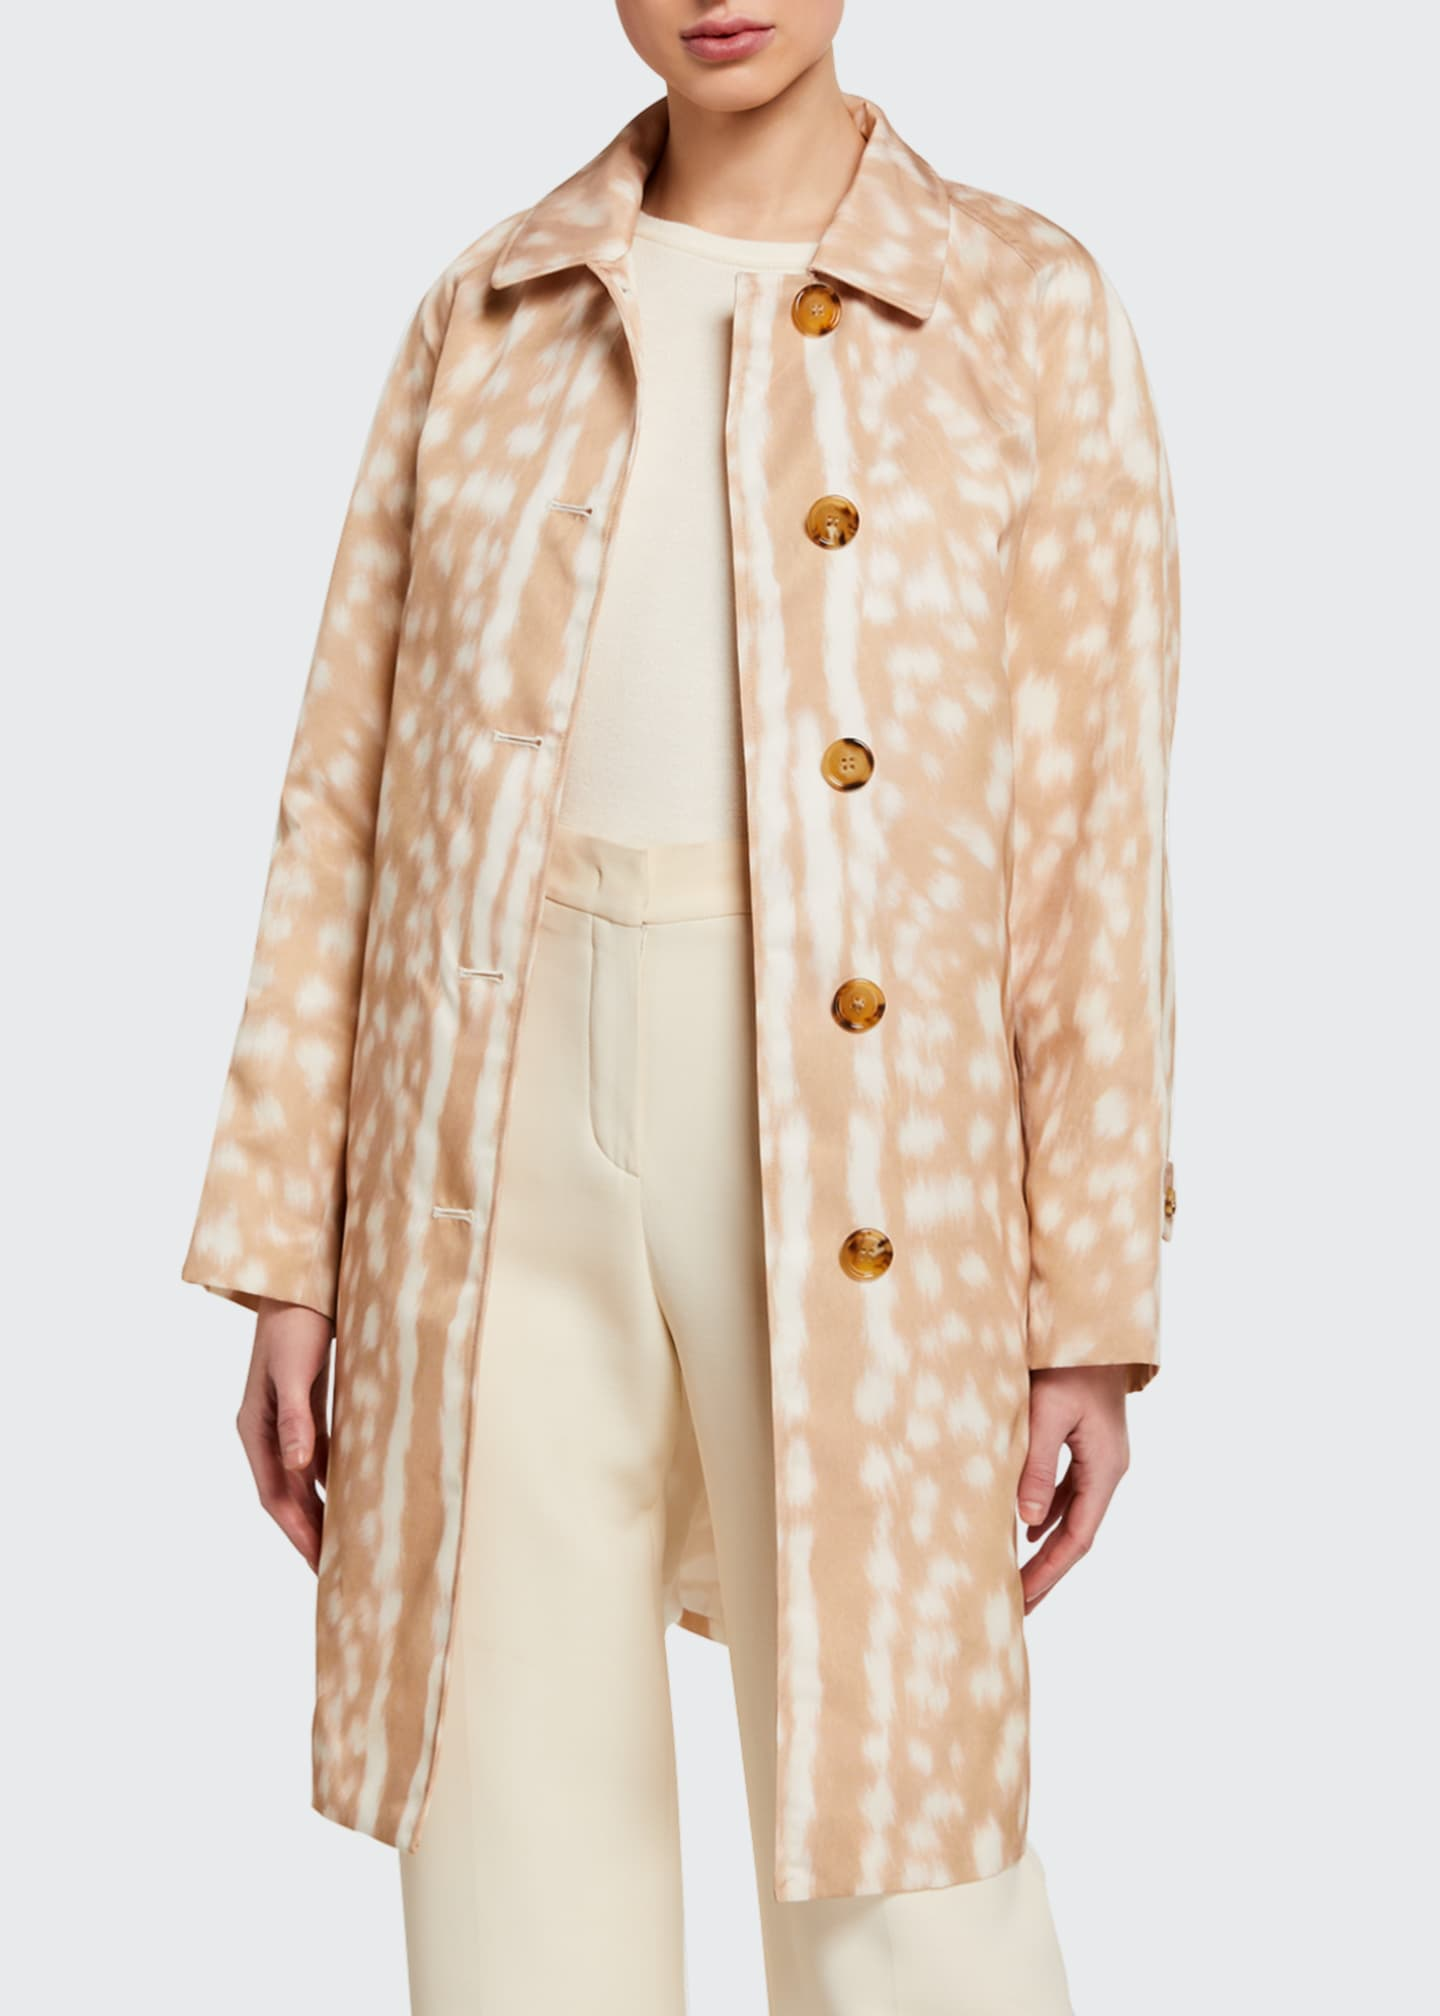 Image 1 of 3: Brunstane Fawn Print Trench Coat